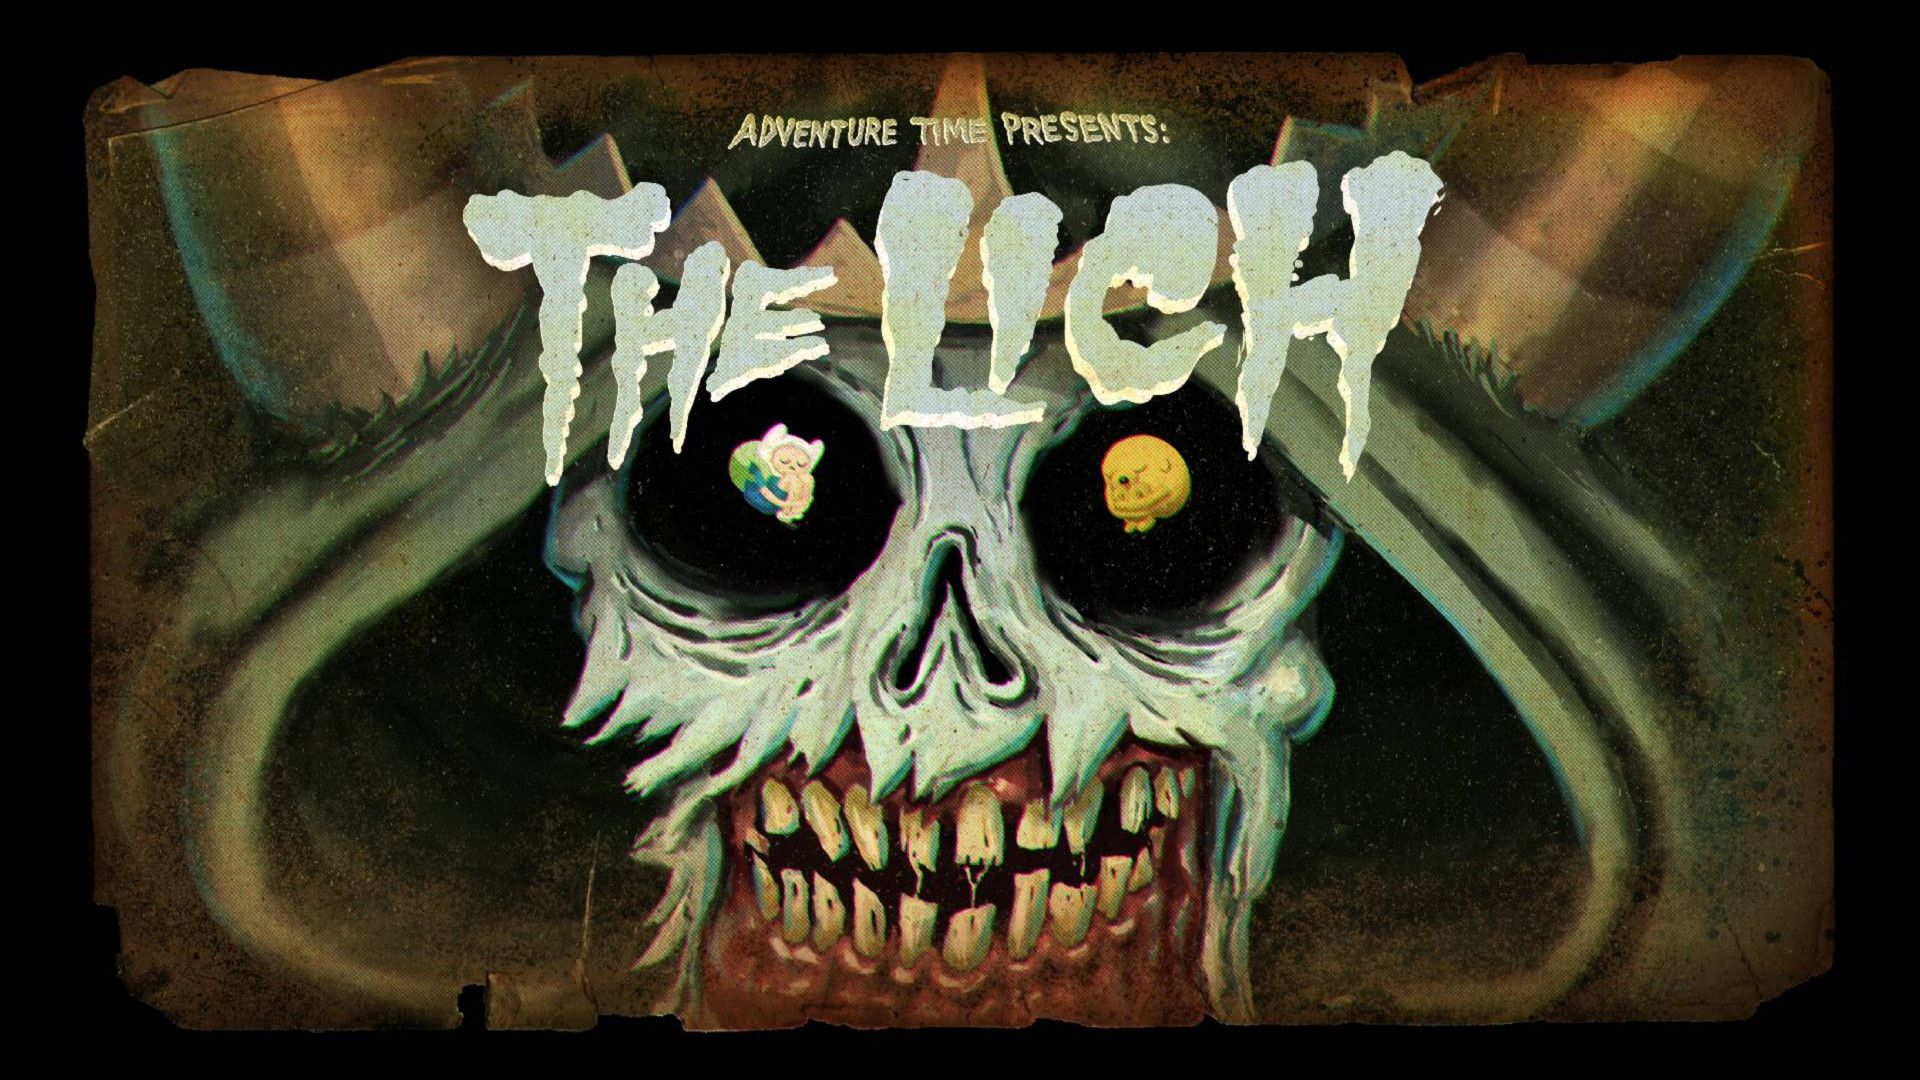 Adventure time title cards 1920x1080 adventure time